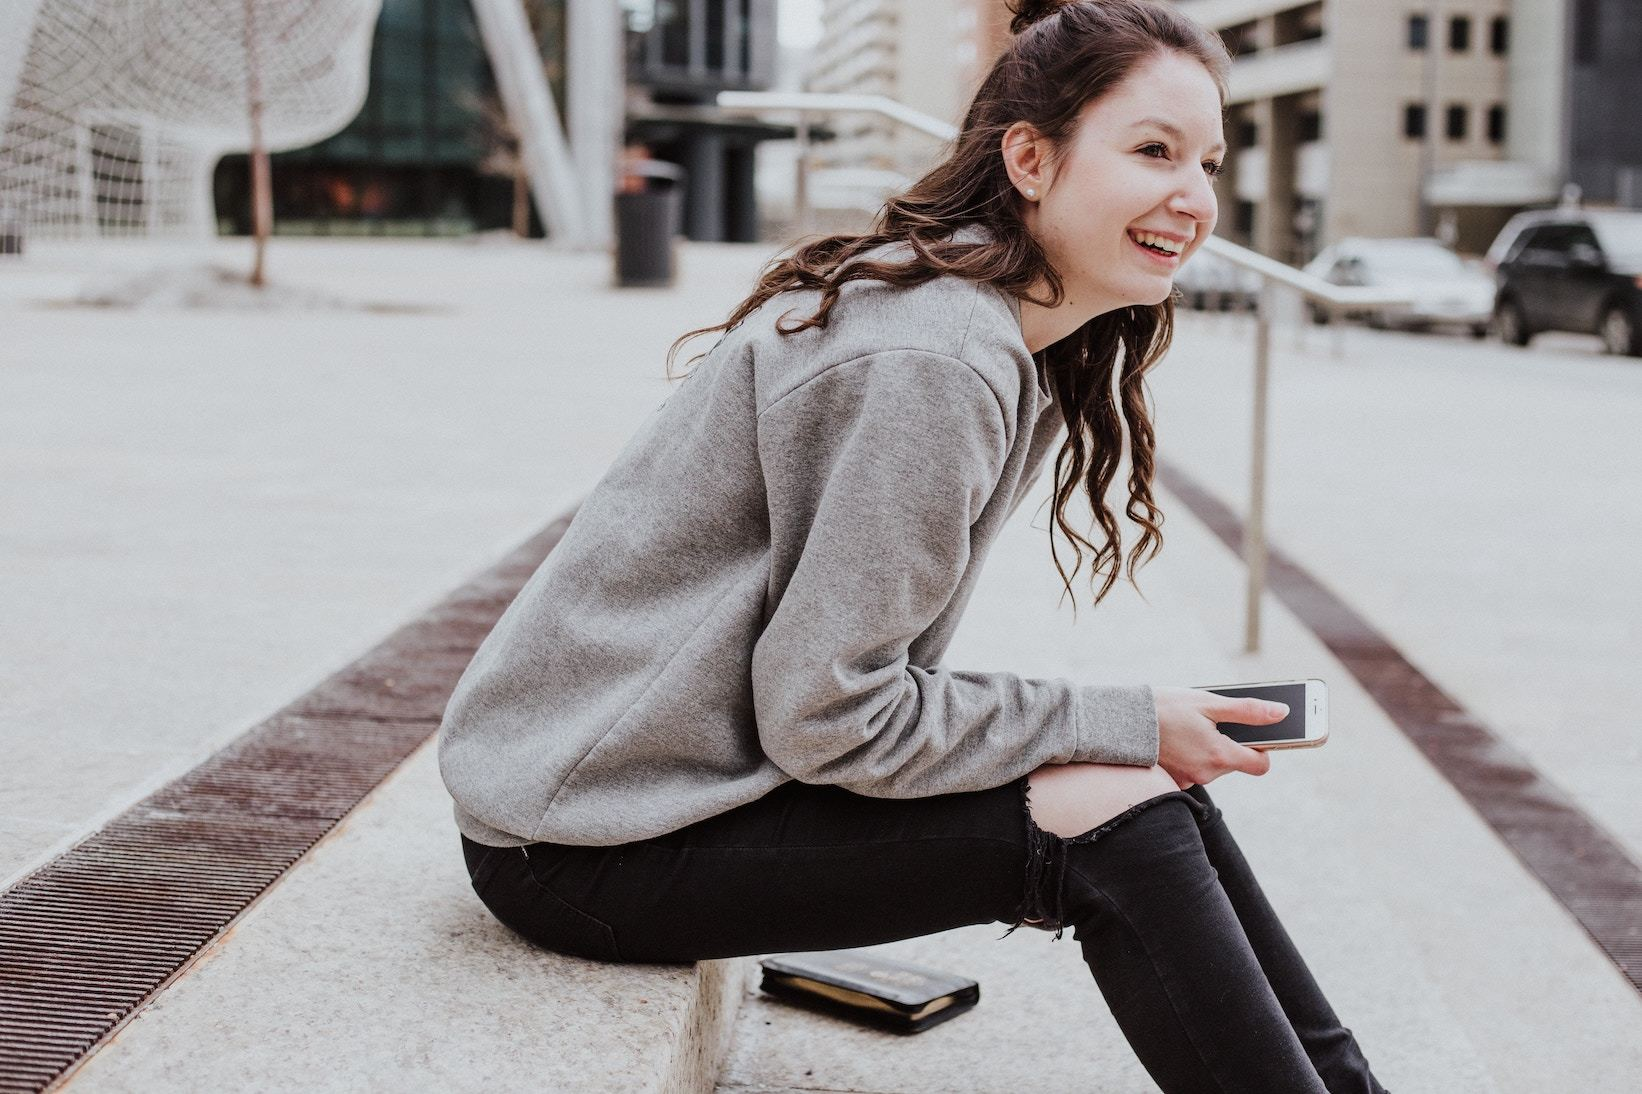 Woman sitting on step, holding smartphone and smiling